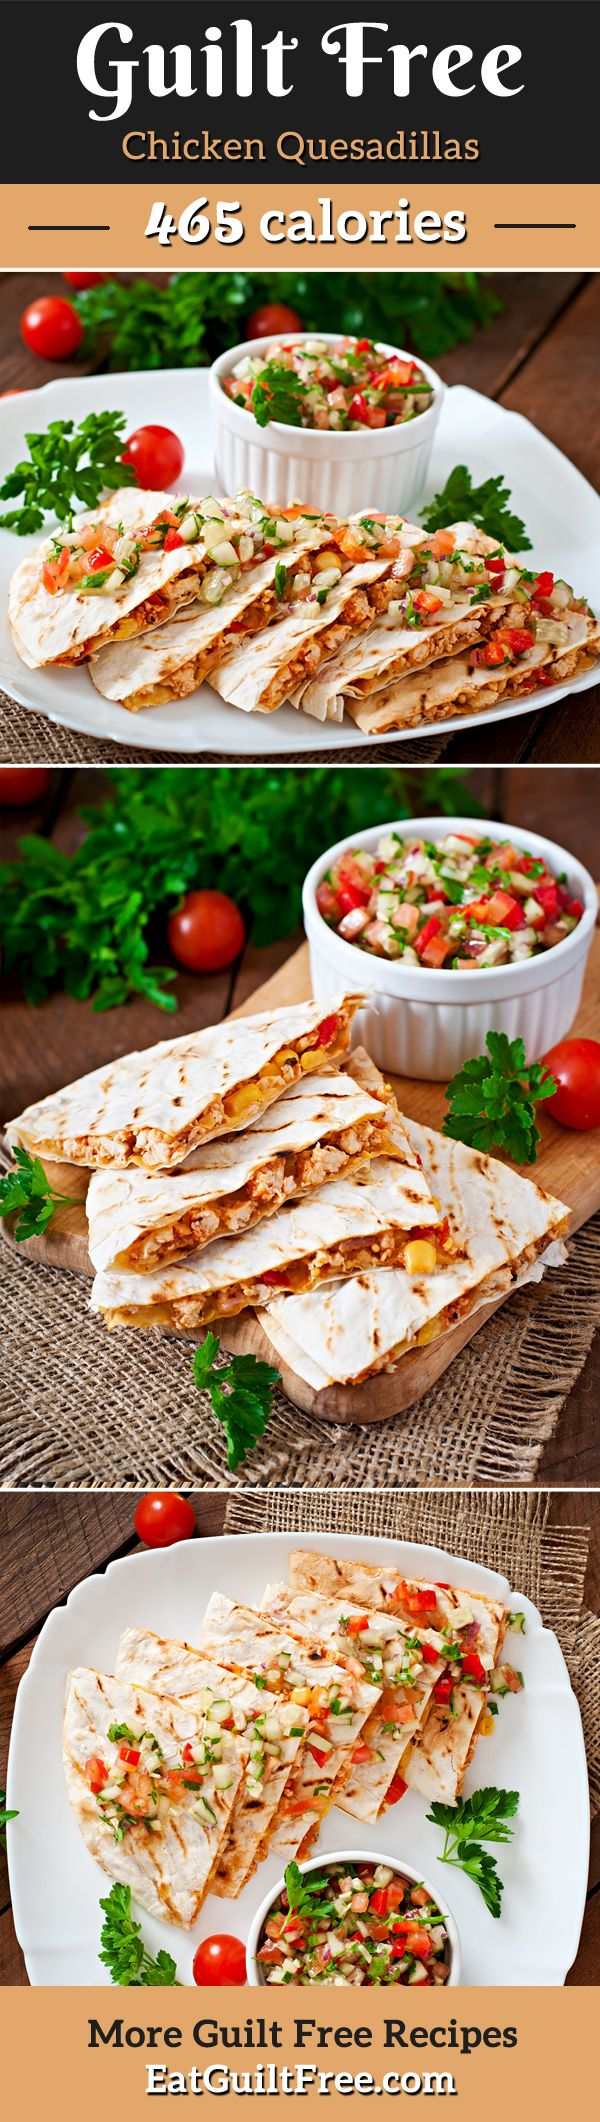 Easy chicken quesadilla recipe for when you have the munchies!